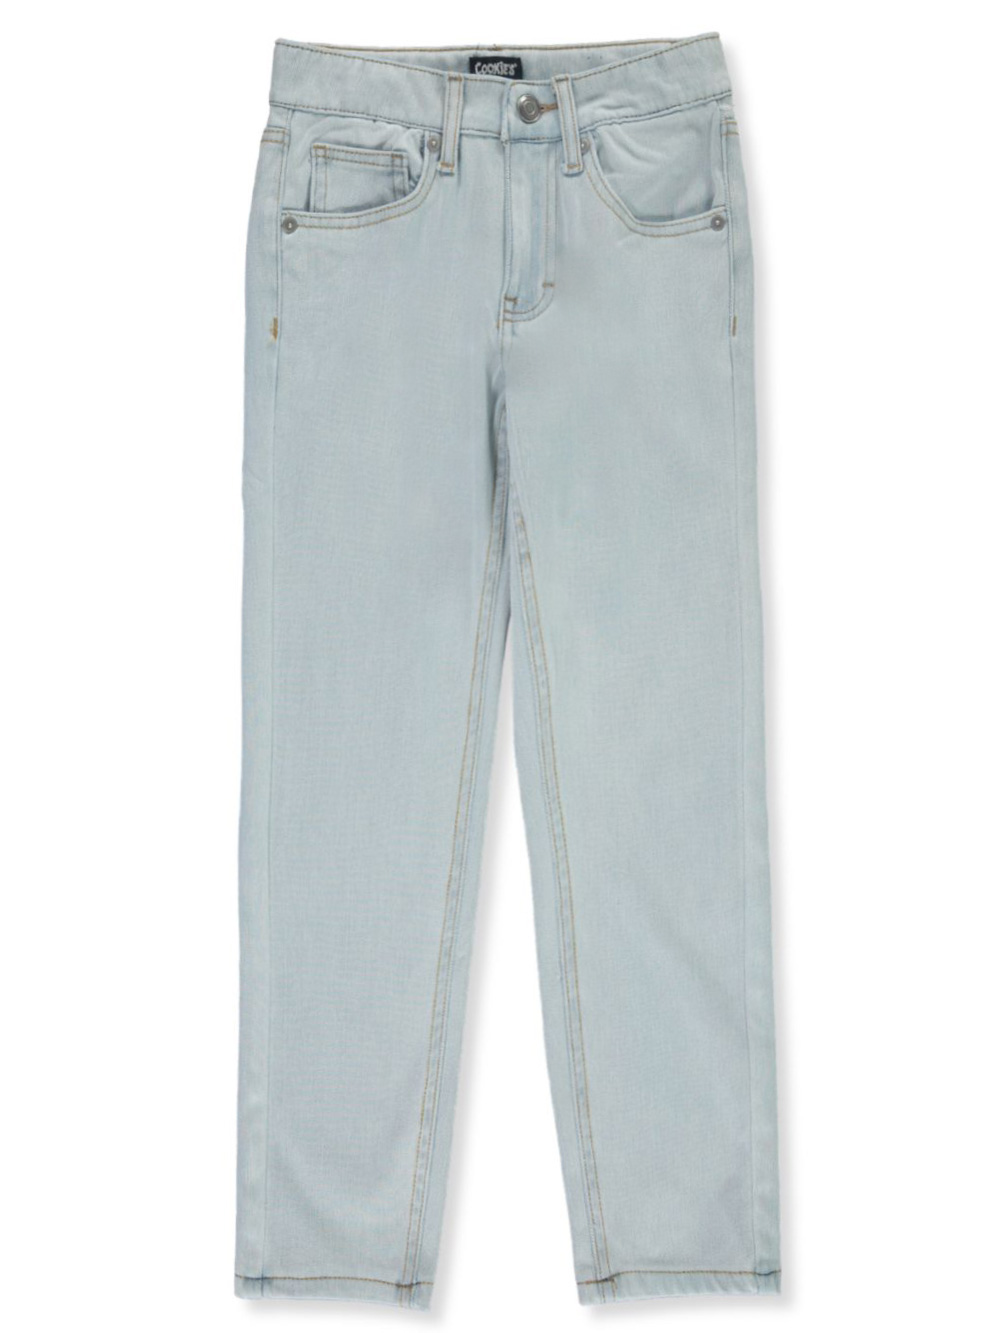 Boys' Straight Fit Jeans